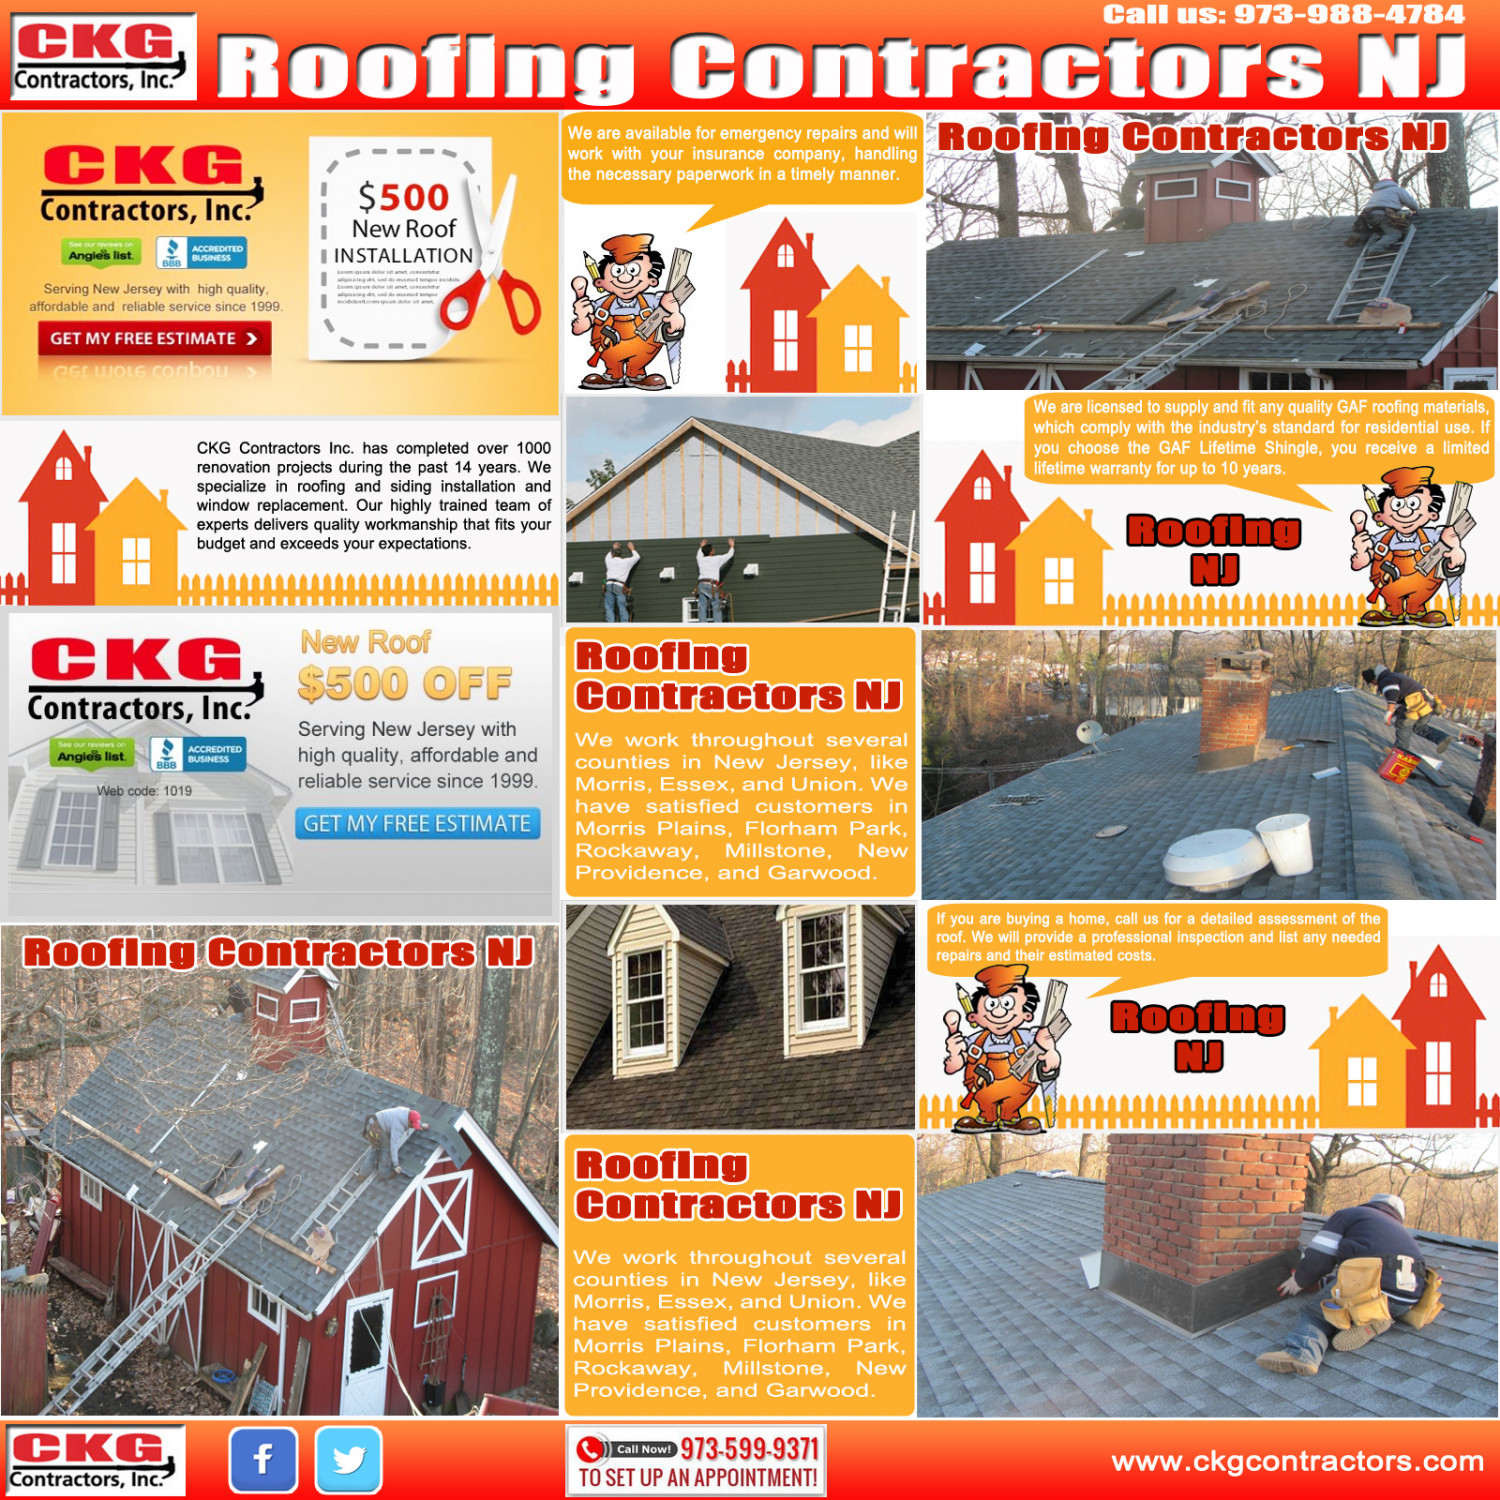 Roofing Contractors NJ Infographic